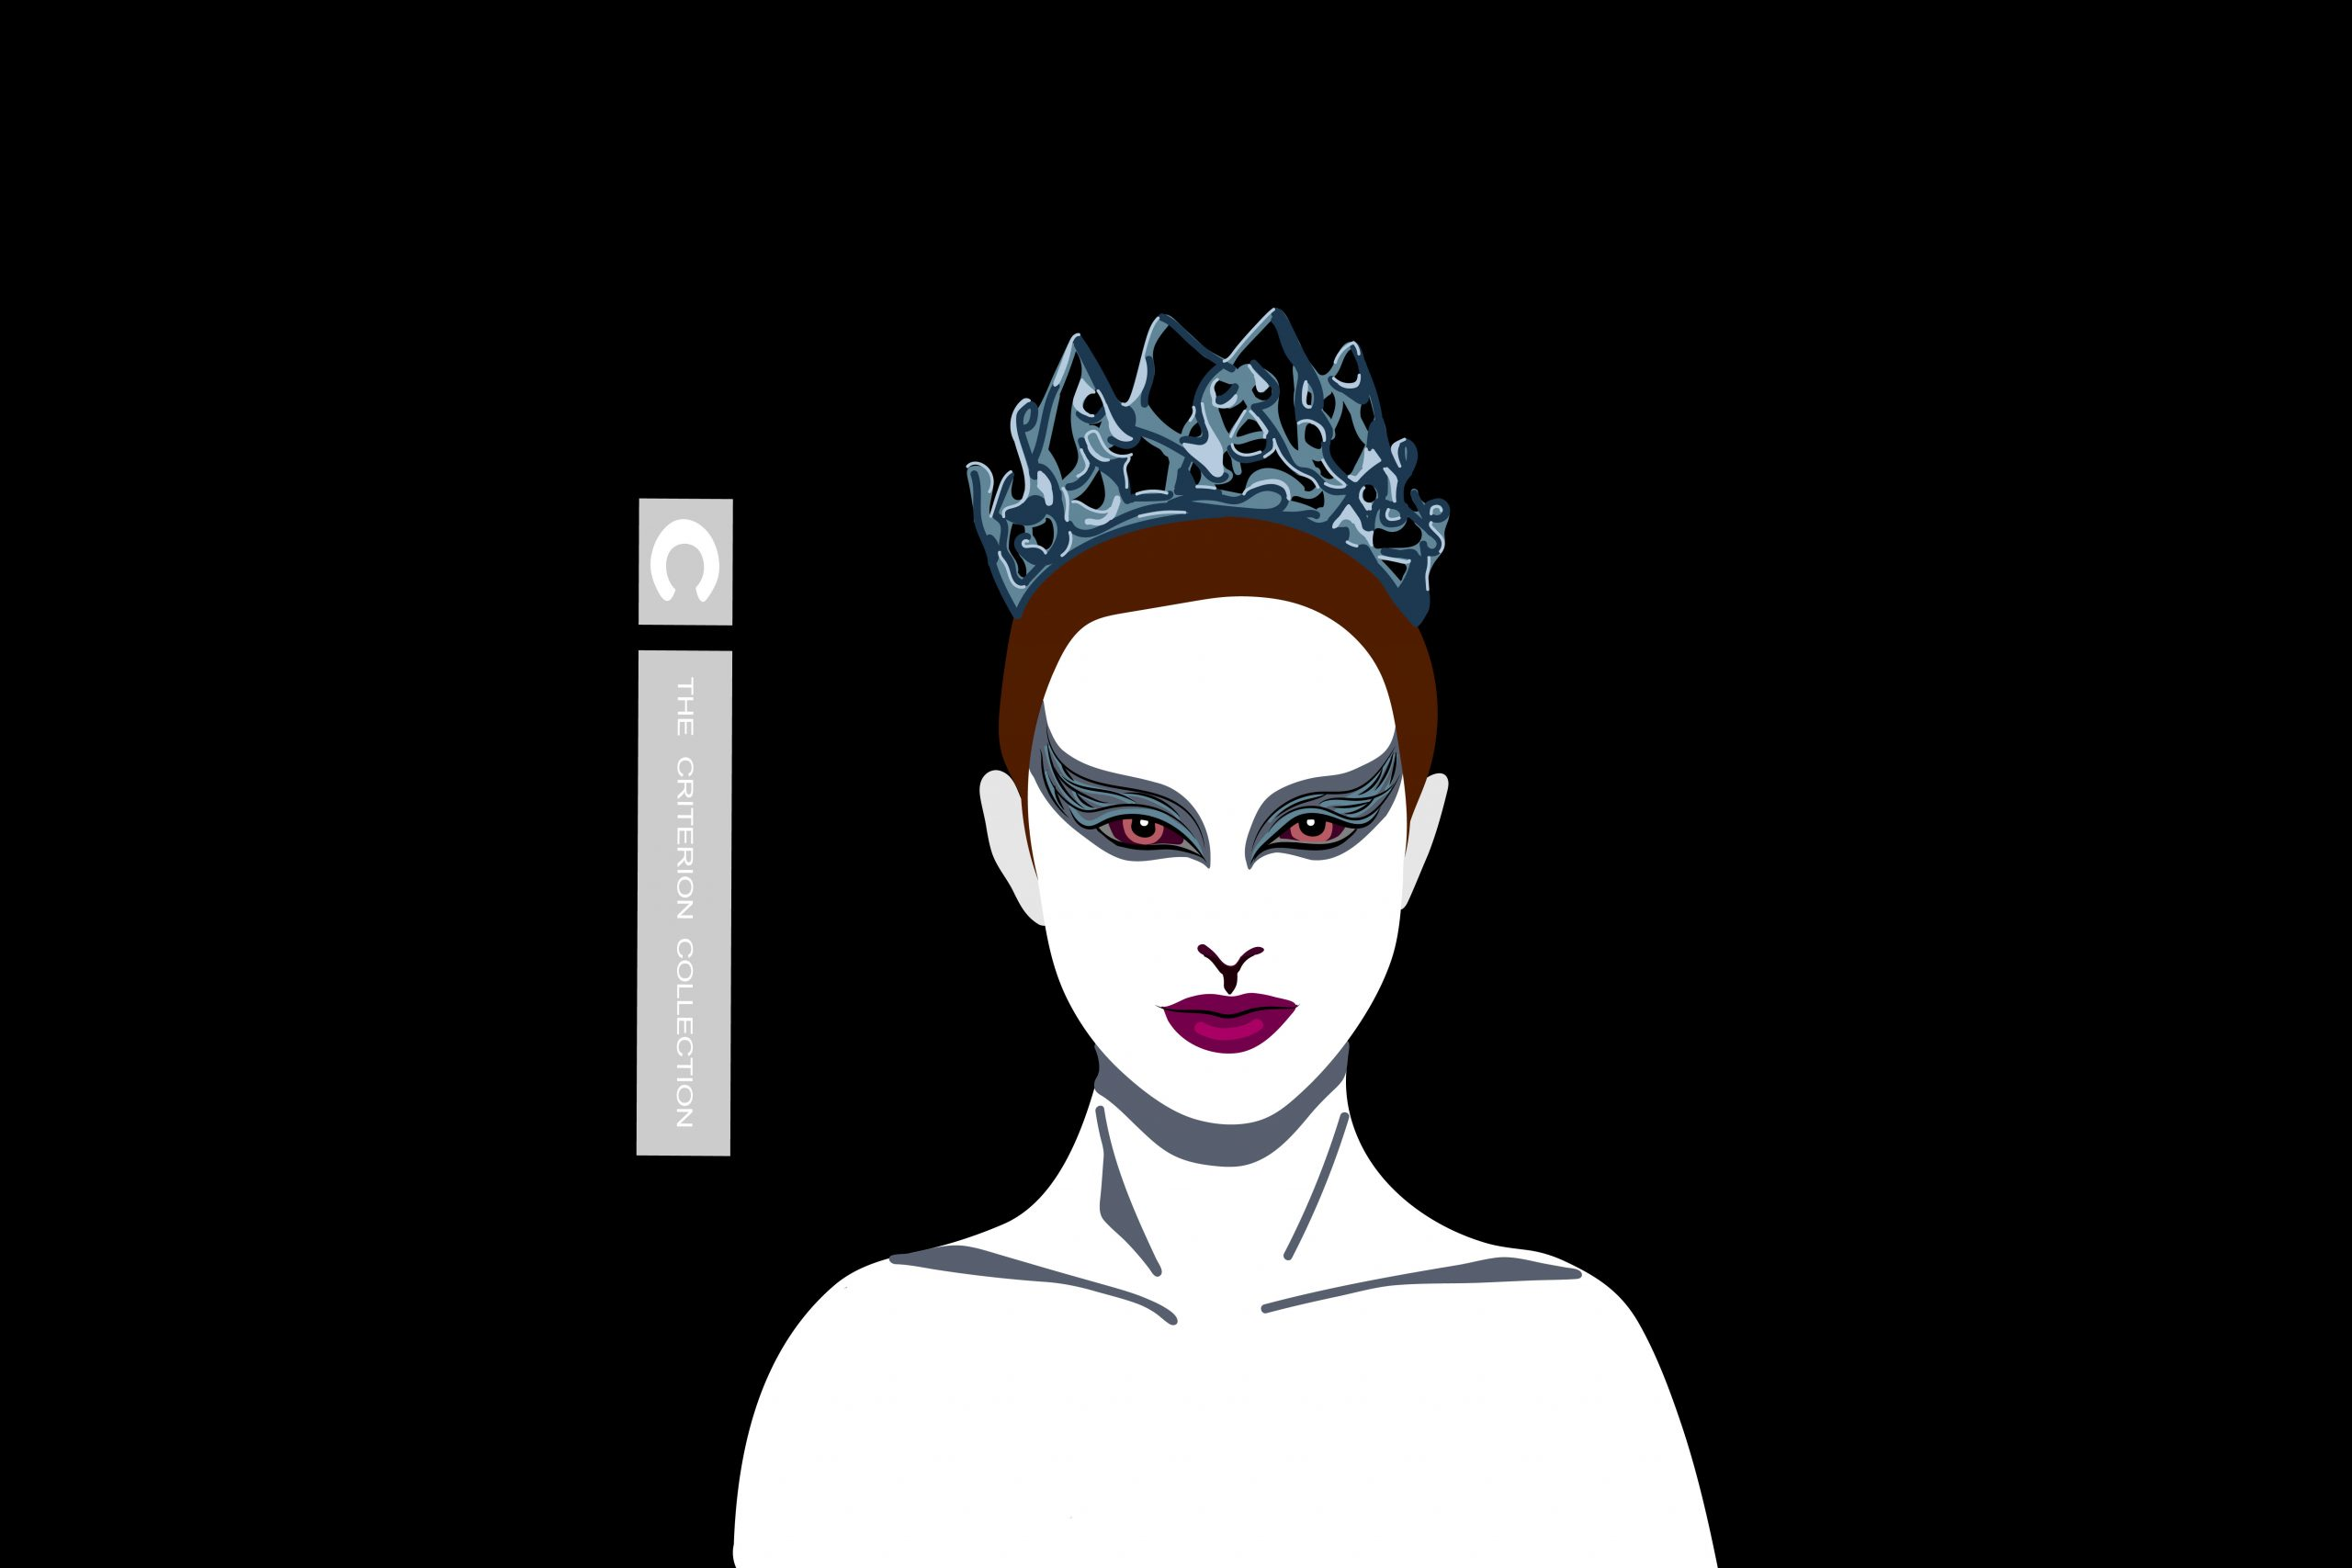 A drawing of Natalie Portman's character from the film 'The Black Swan'